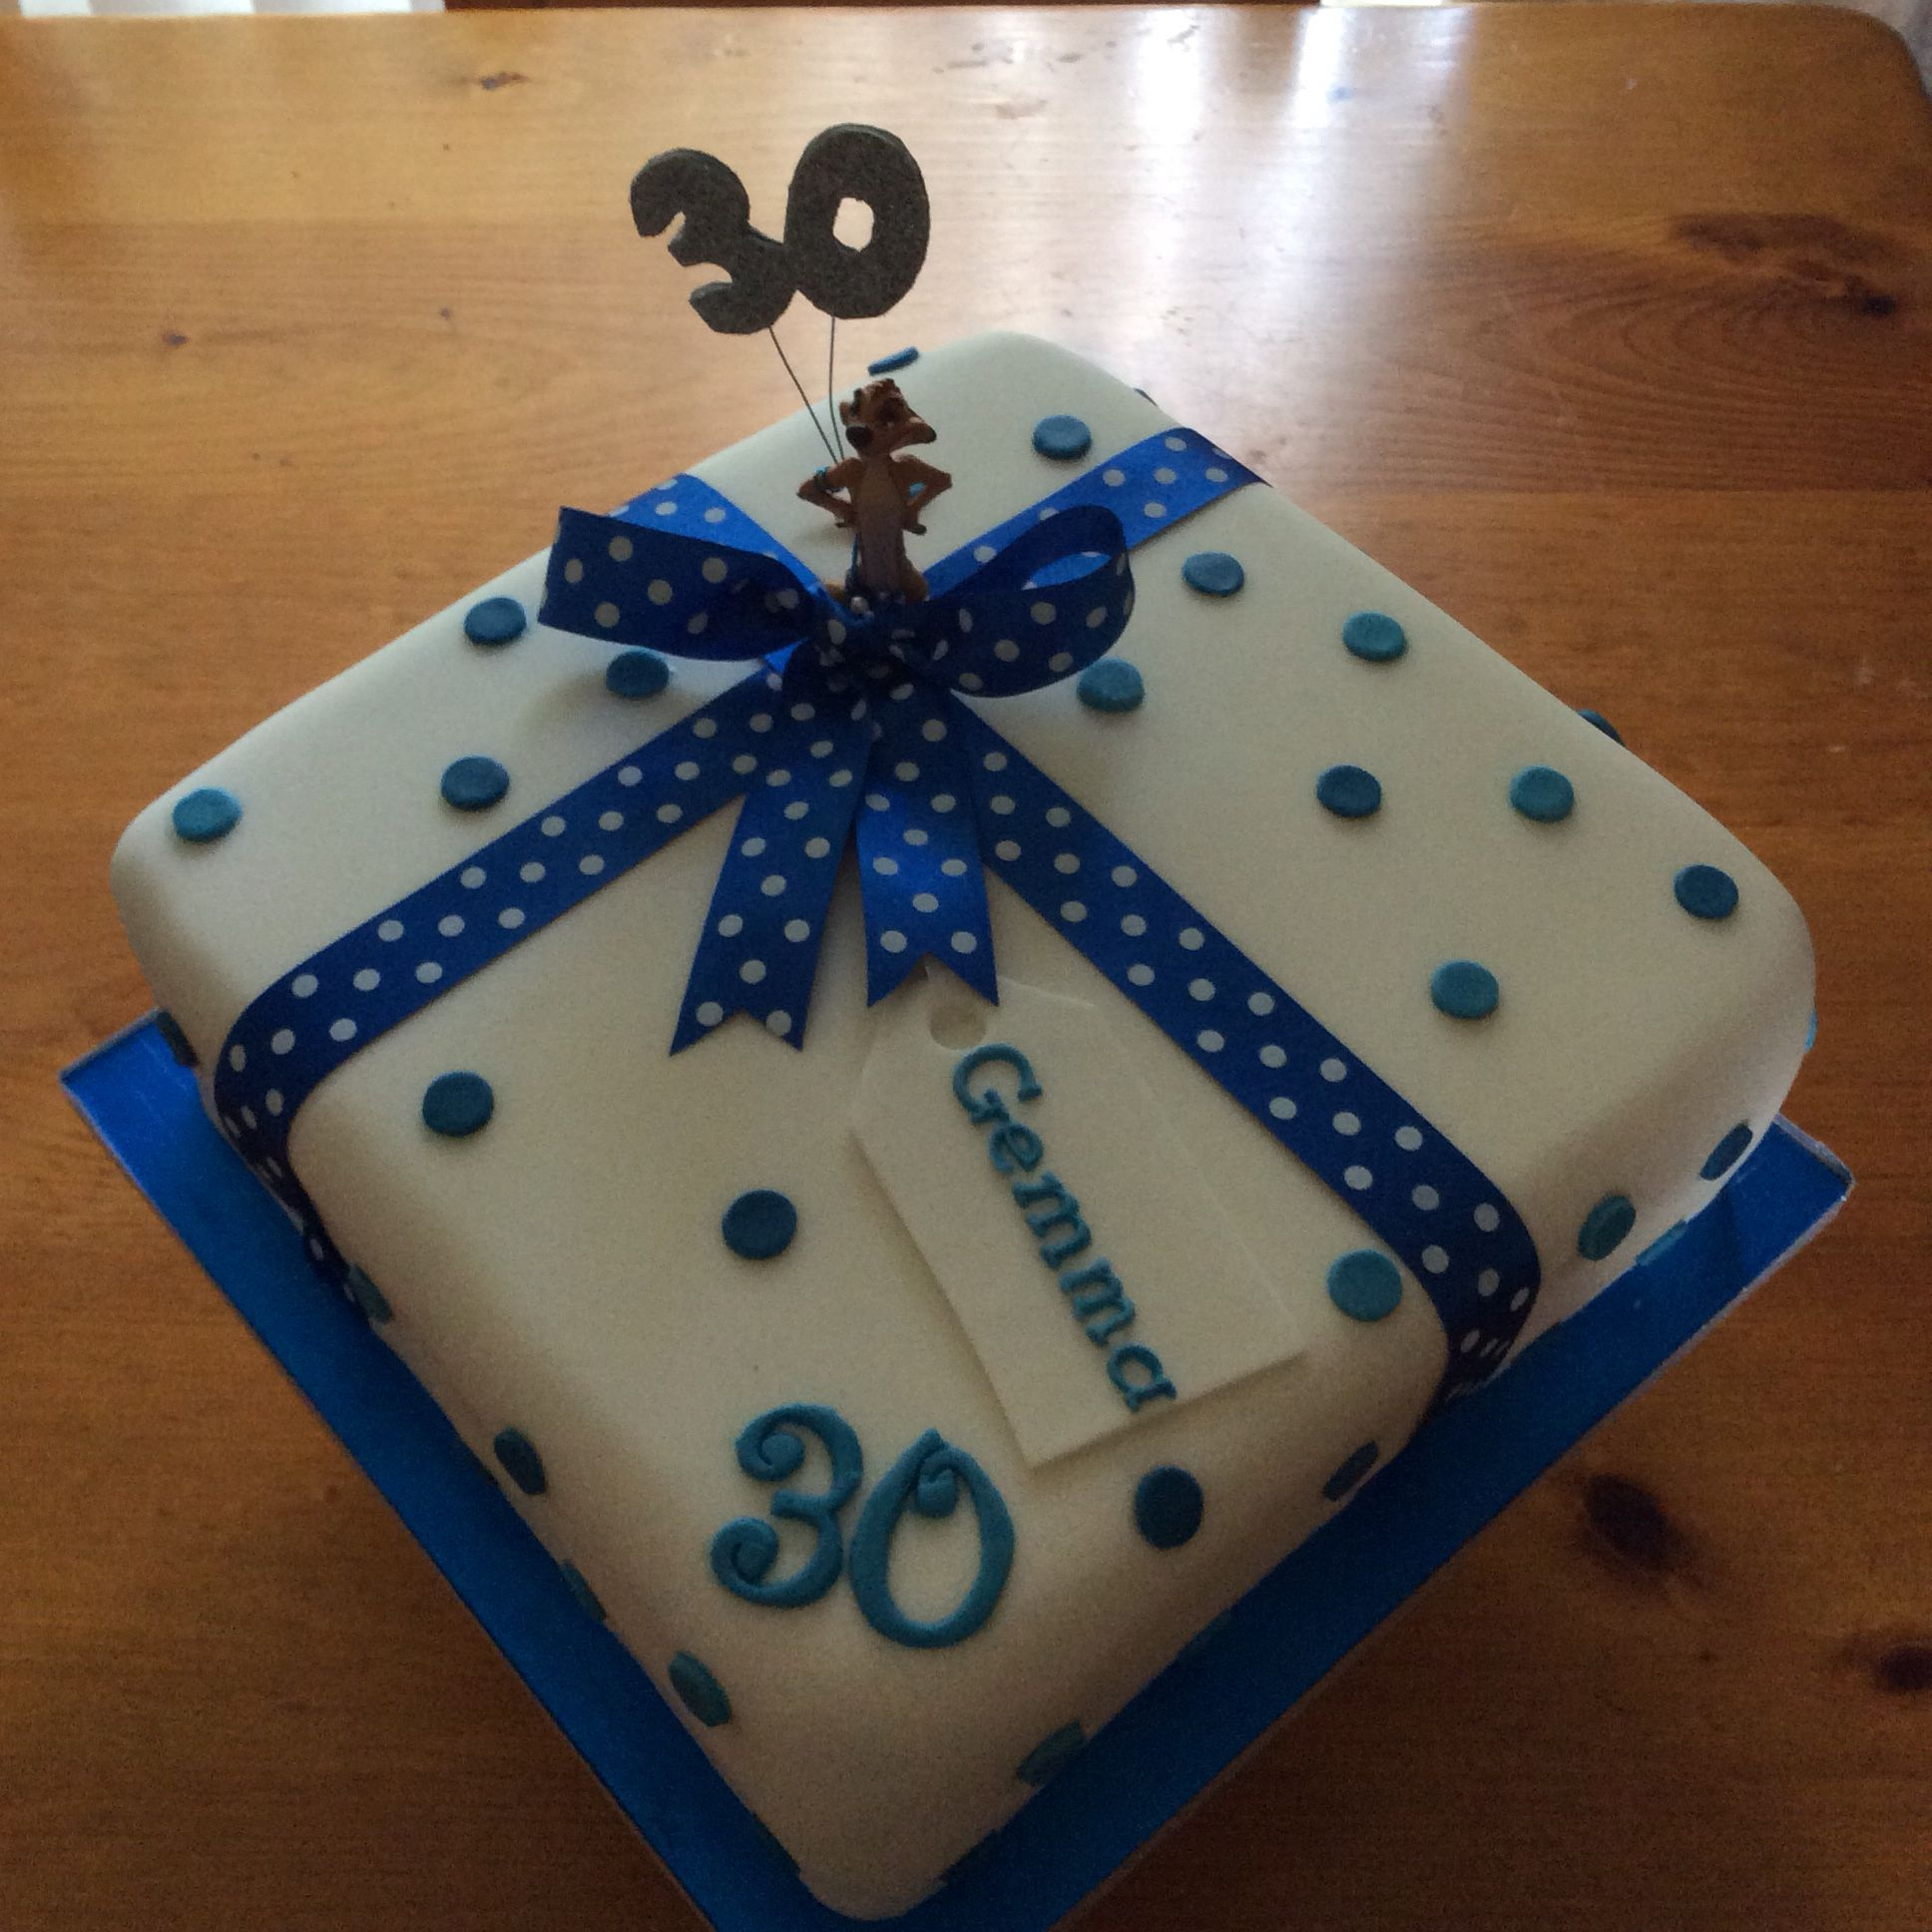 30th birthday parcel cake complete with timone buy